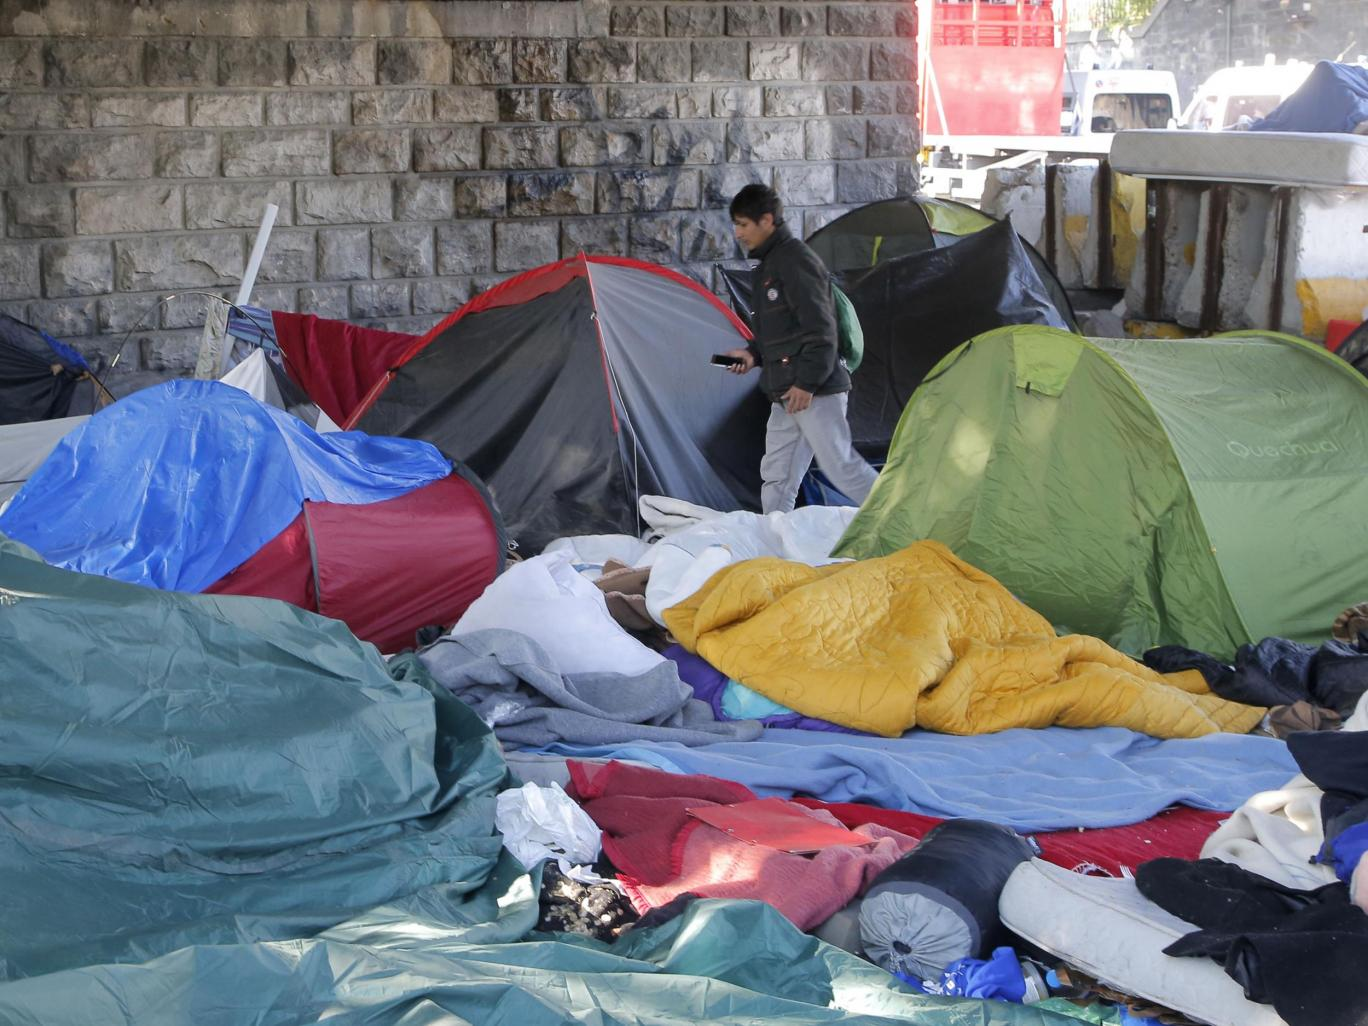 French authorities bus hundreds of refugees out of Paris to accommodation centres across France